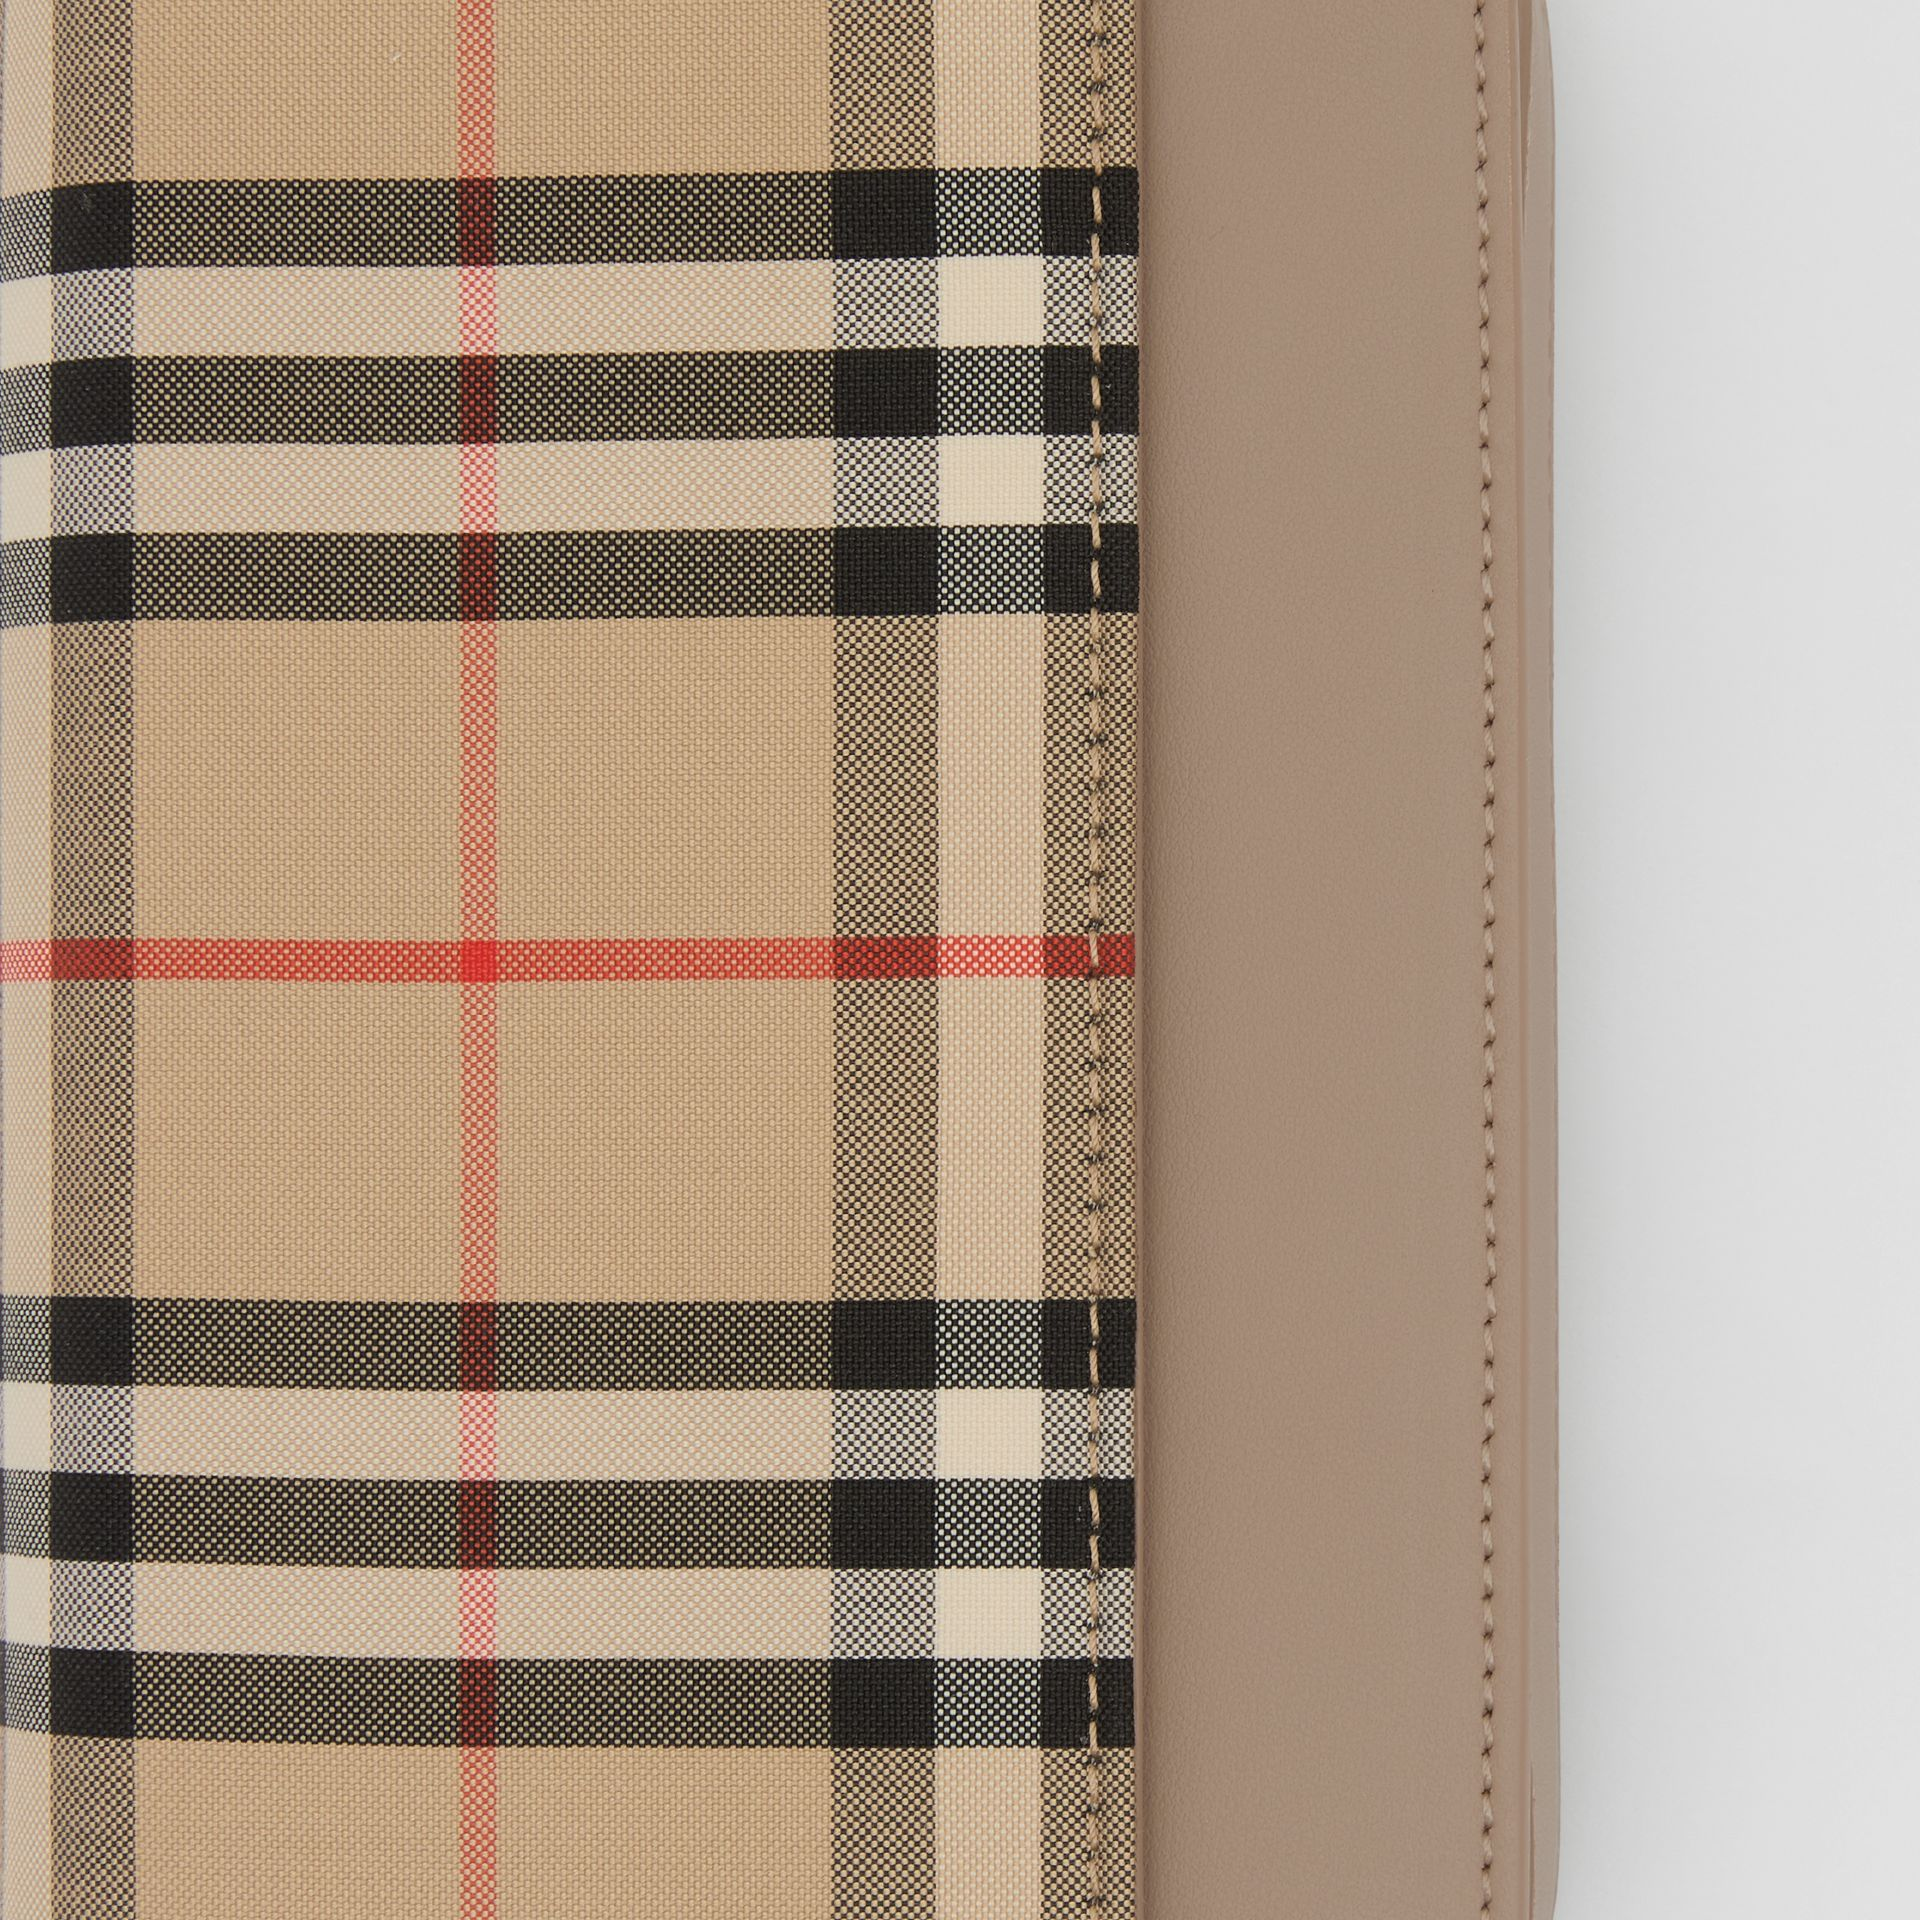 Vintage Check Canvas and Leather Bag in Honey - Women | Burberry - gallery image 1